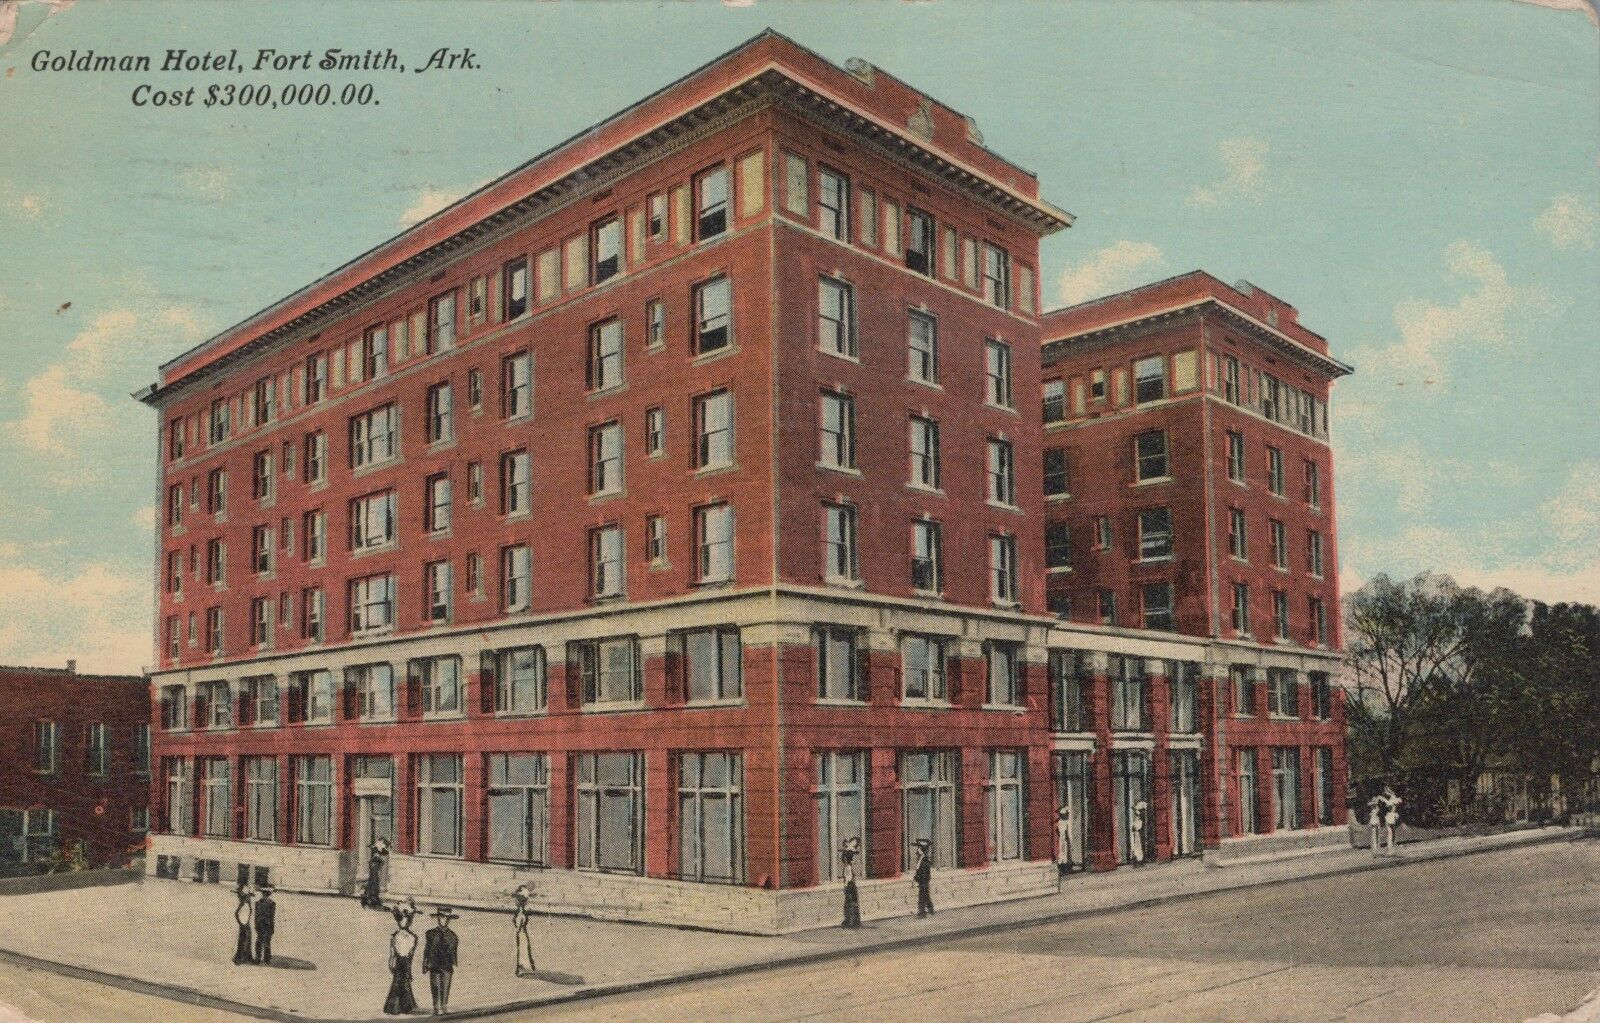 Postcard Fort Smith AR Goldman Hotel Cost $300,000 Early 1900s